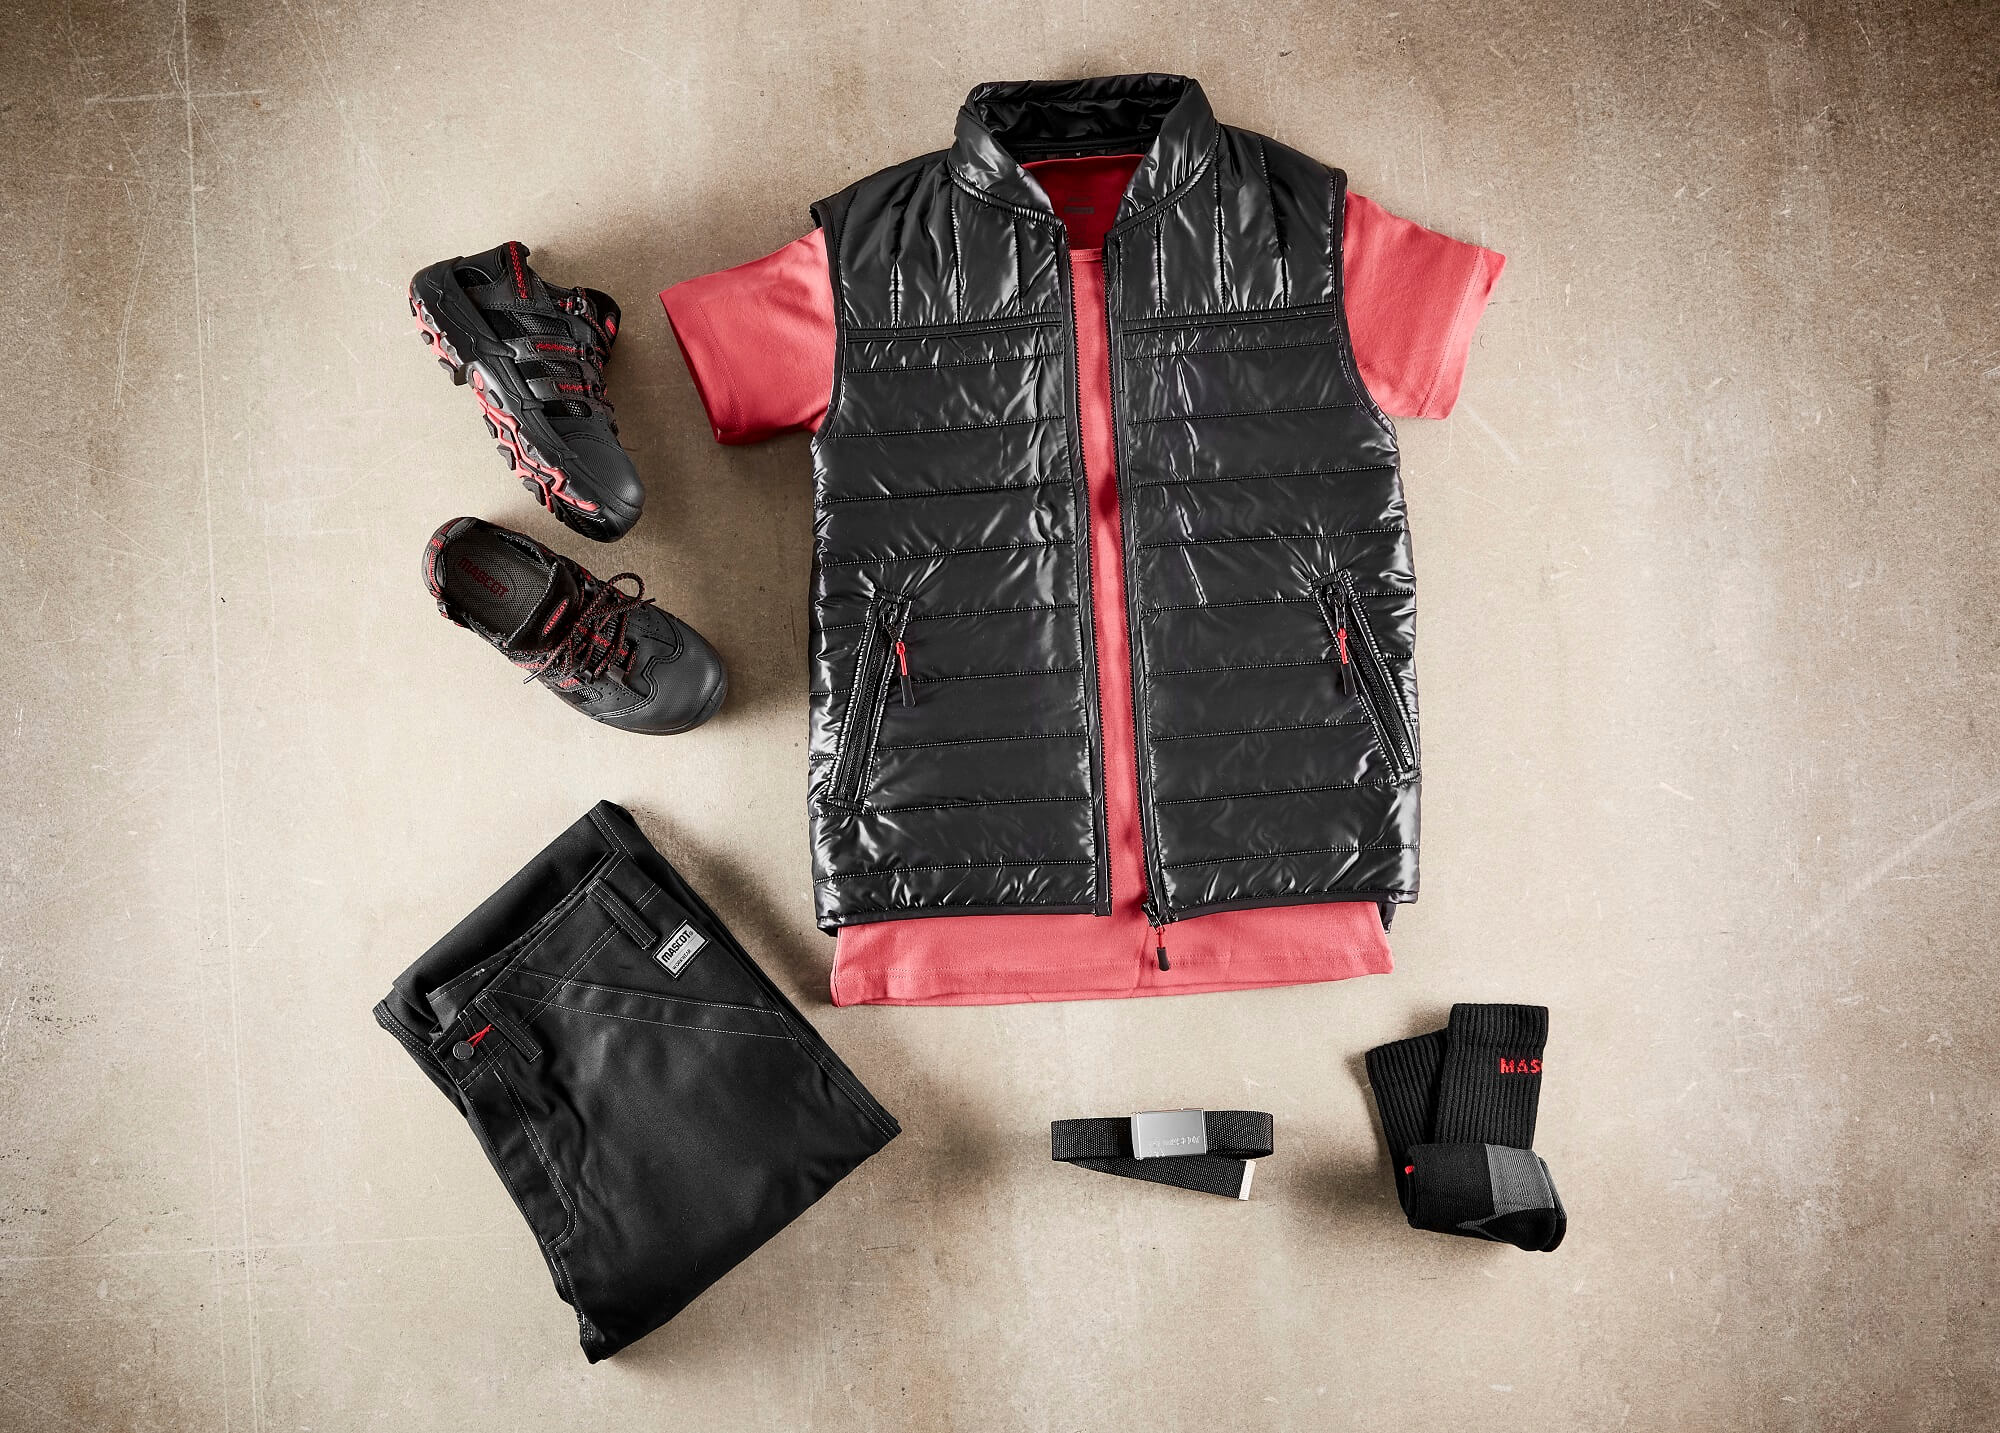 Thermal Gilet & Pants Black - T-shirt Red - Collage